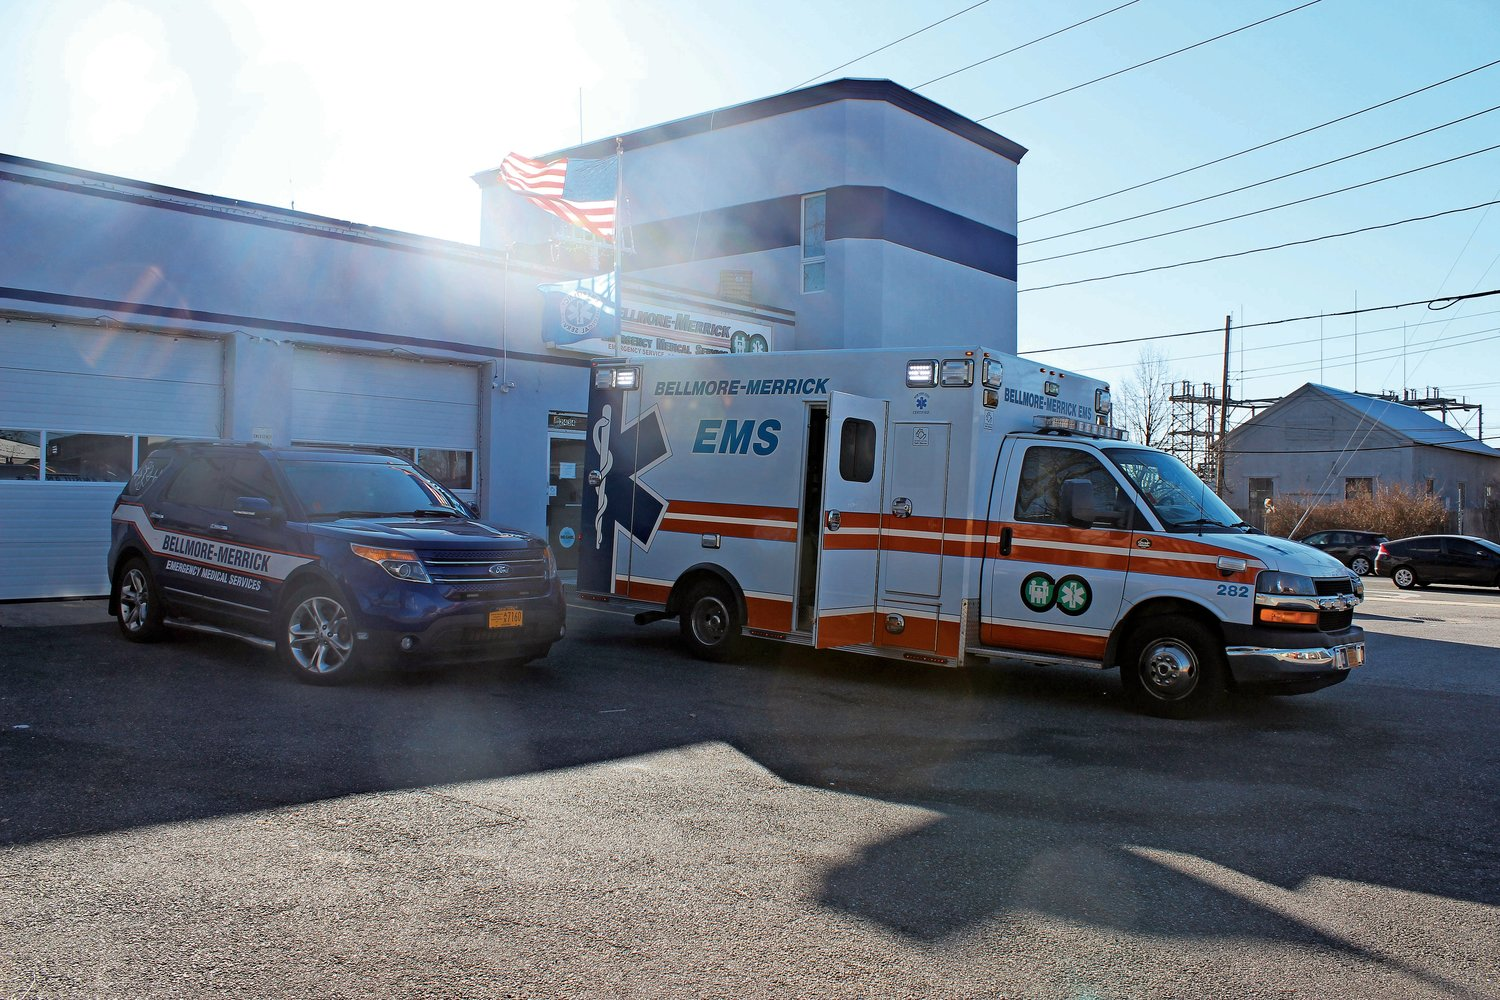 The Bellmore-Merrick Emergency Medical Services headquarters in Bellmore.